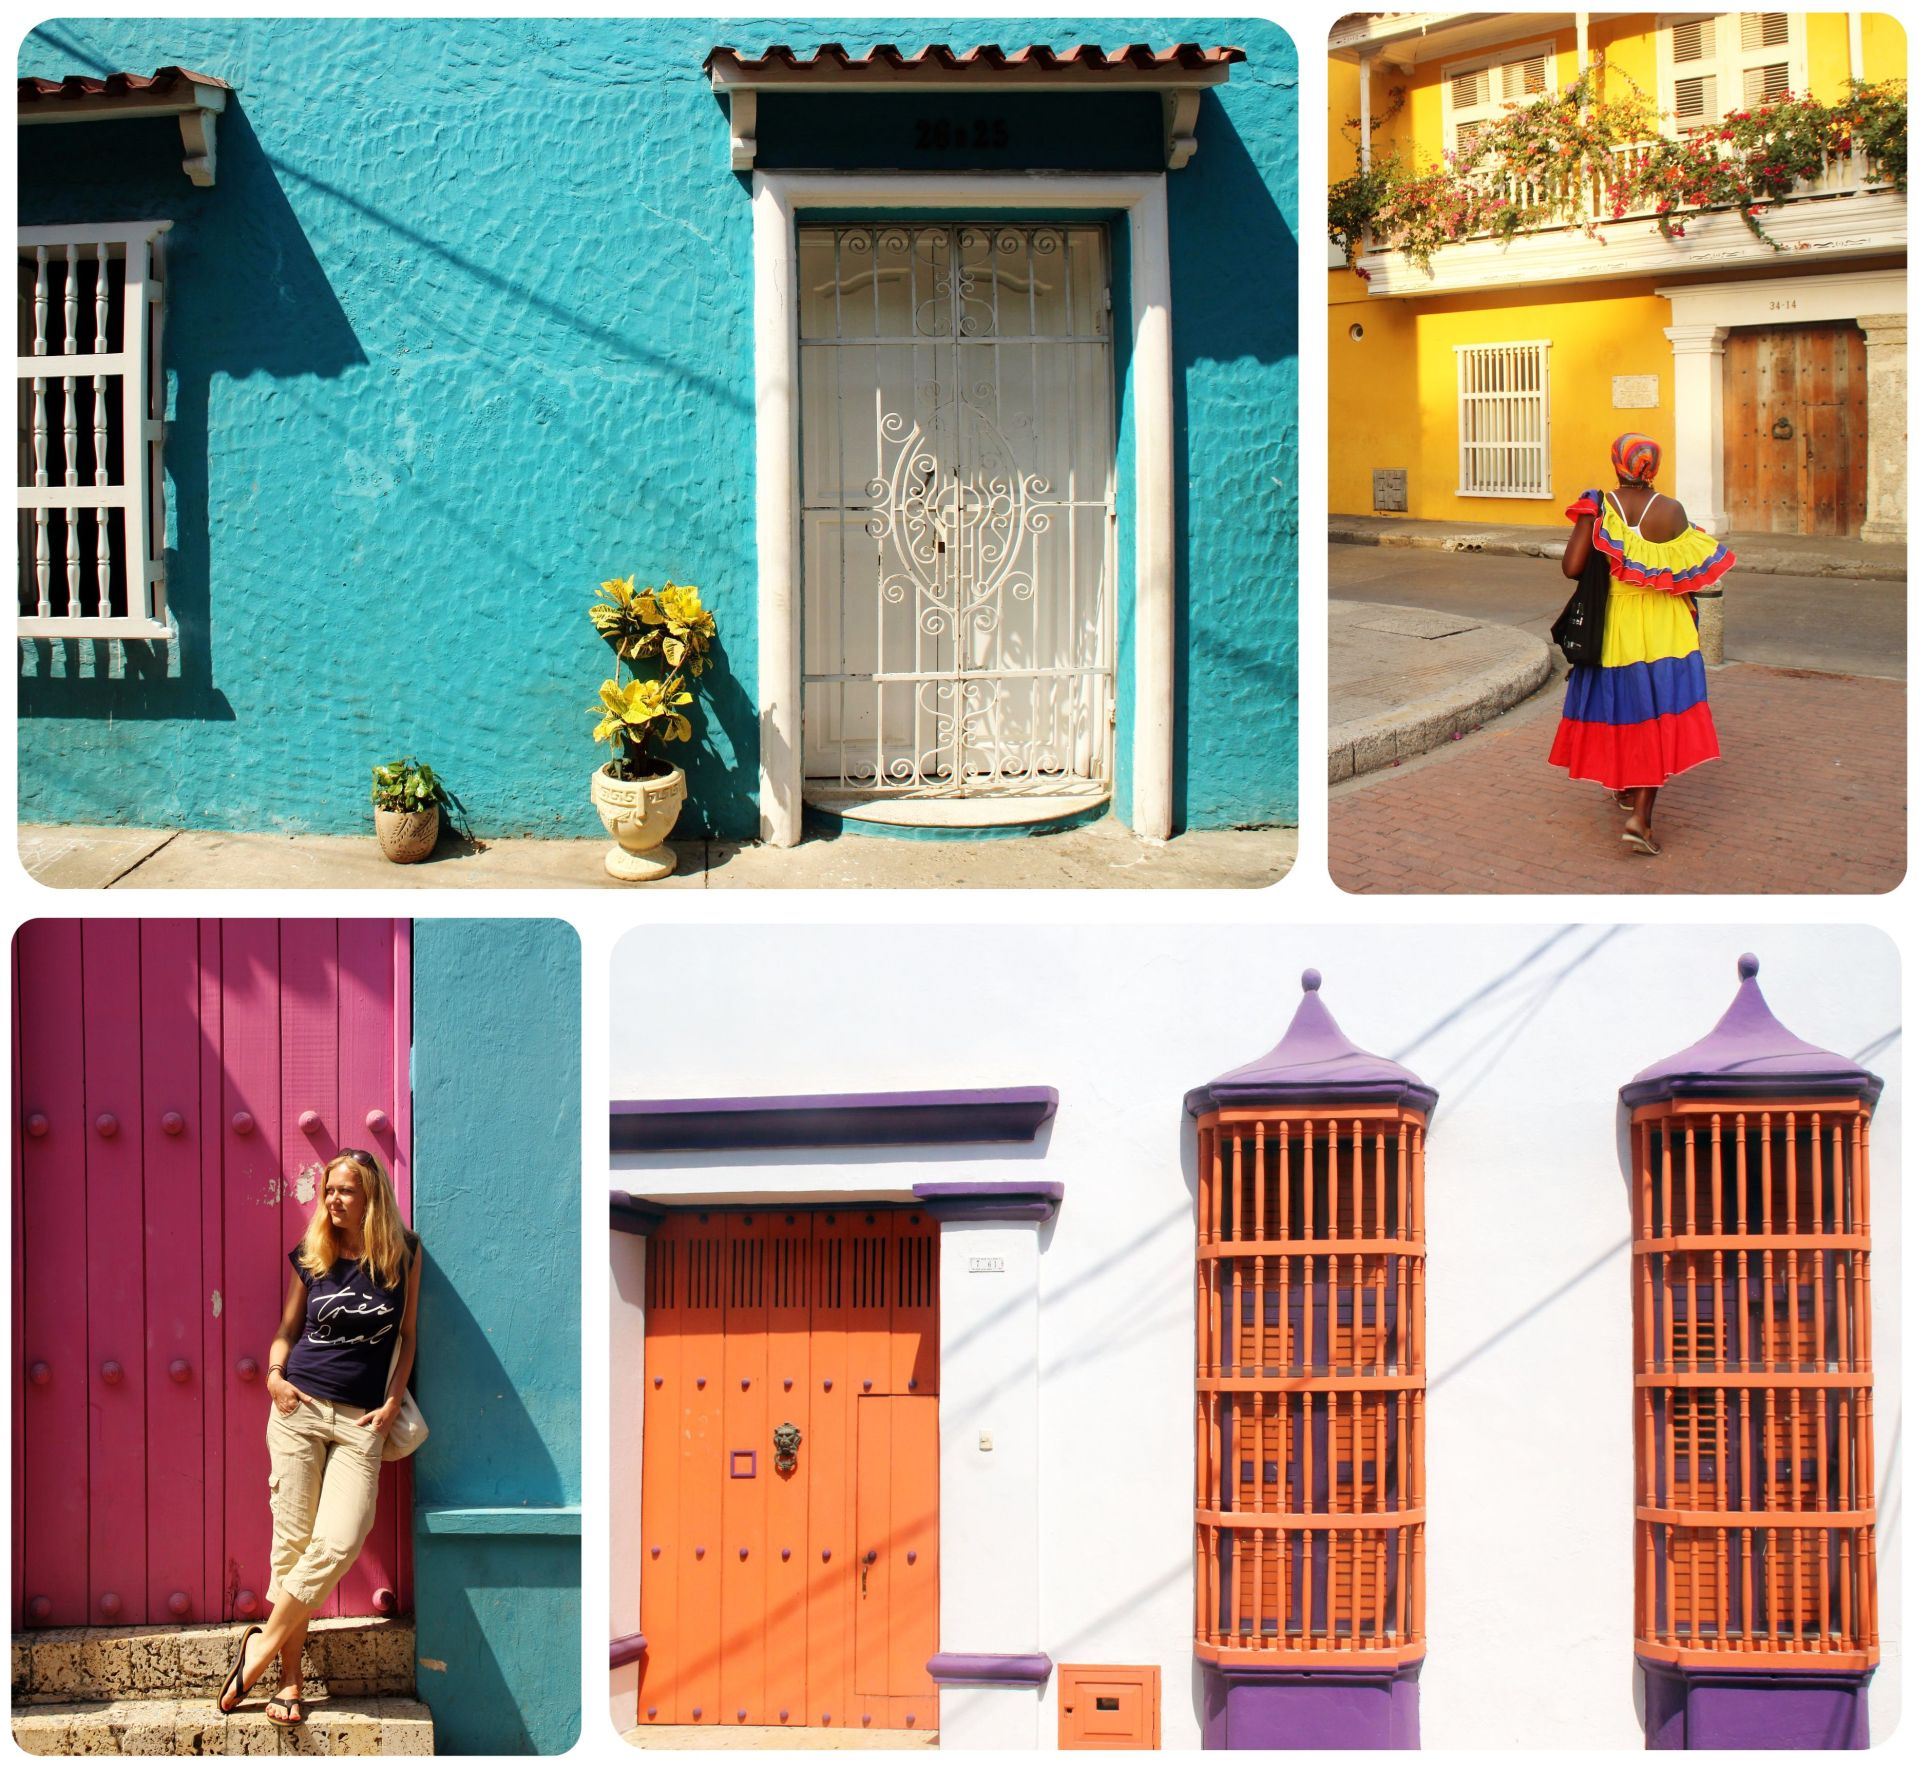 Cartagena Collage